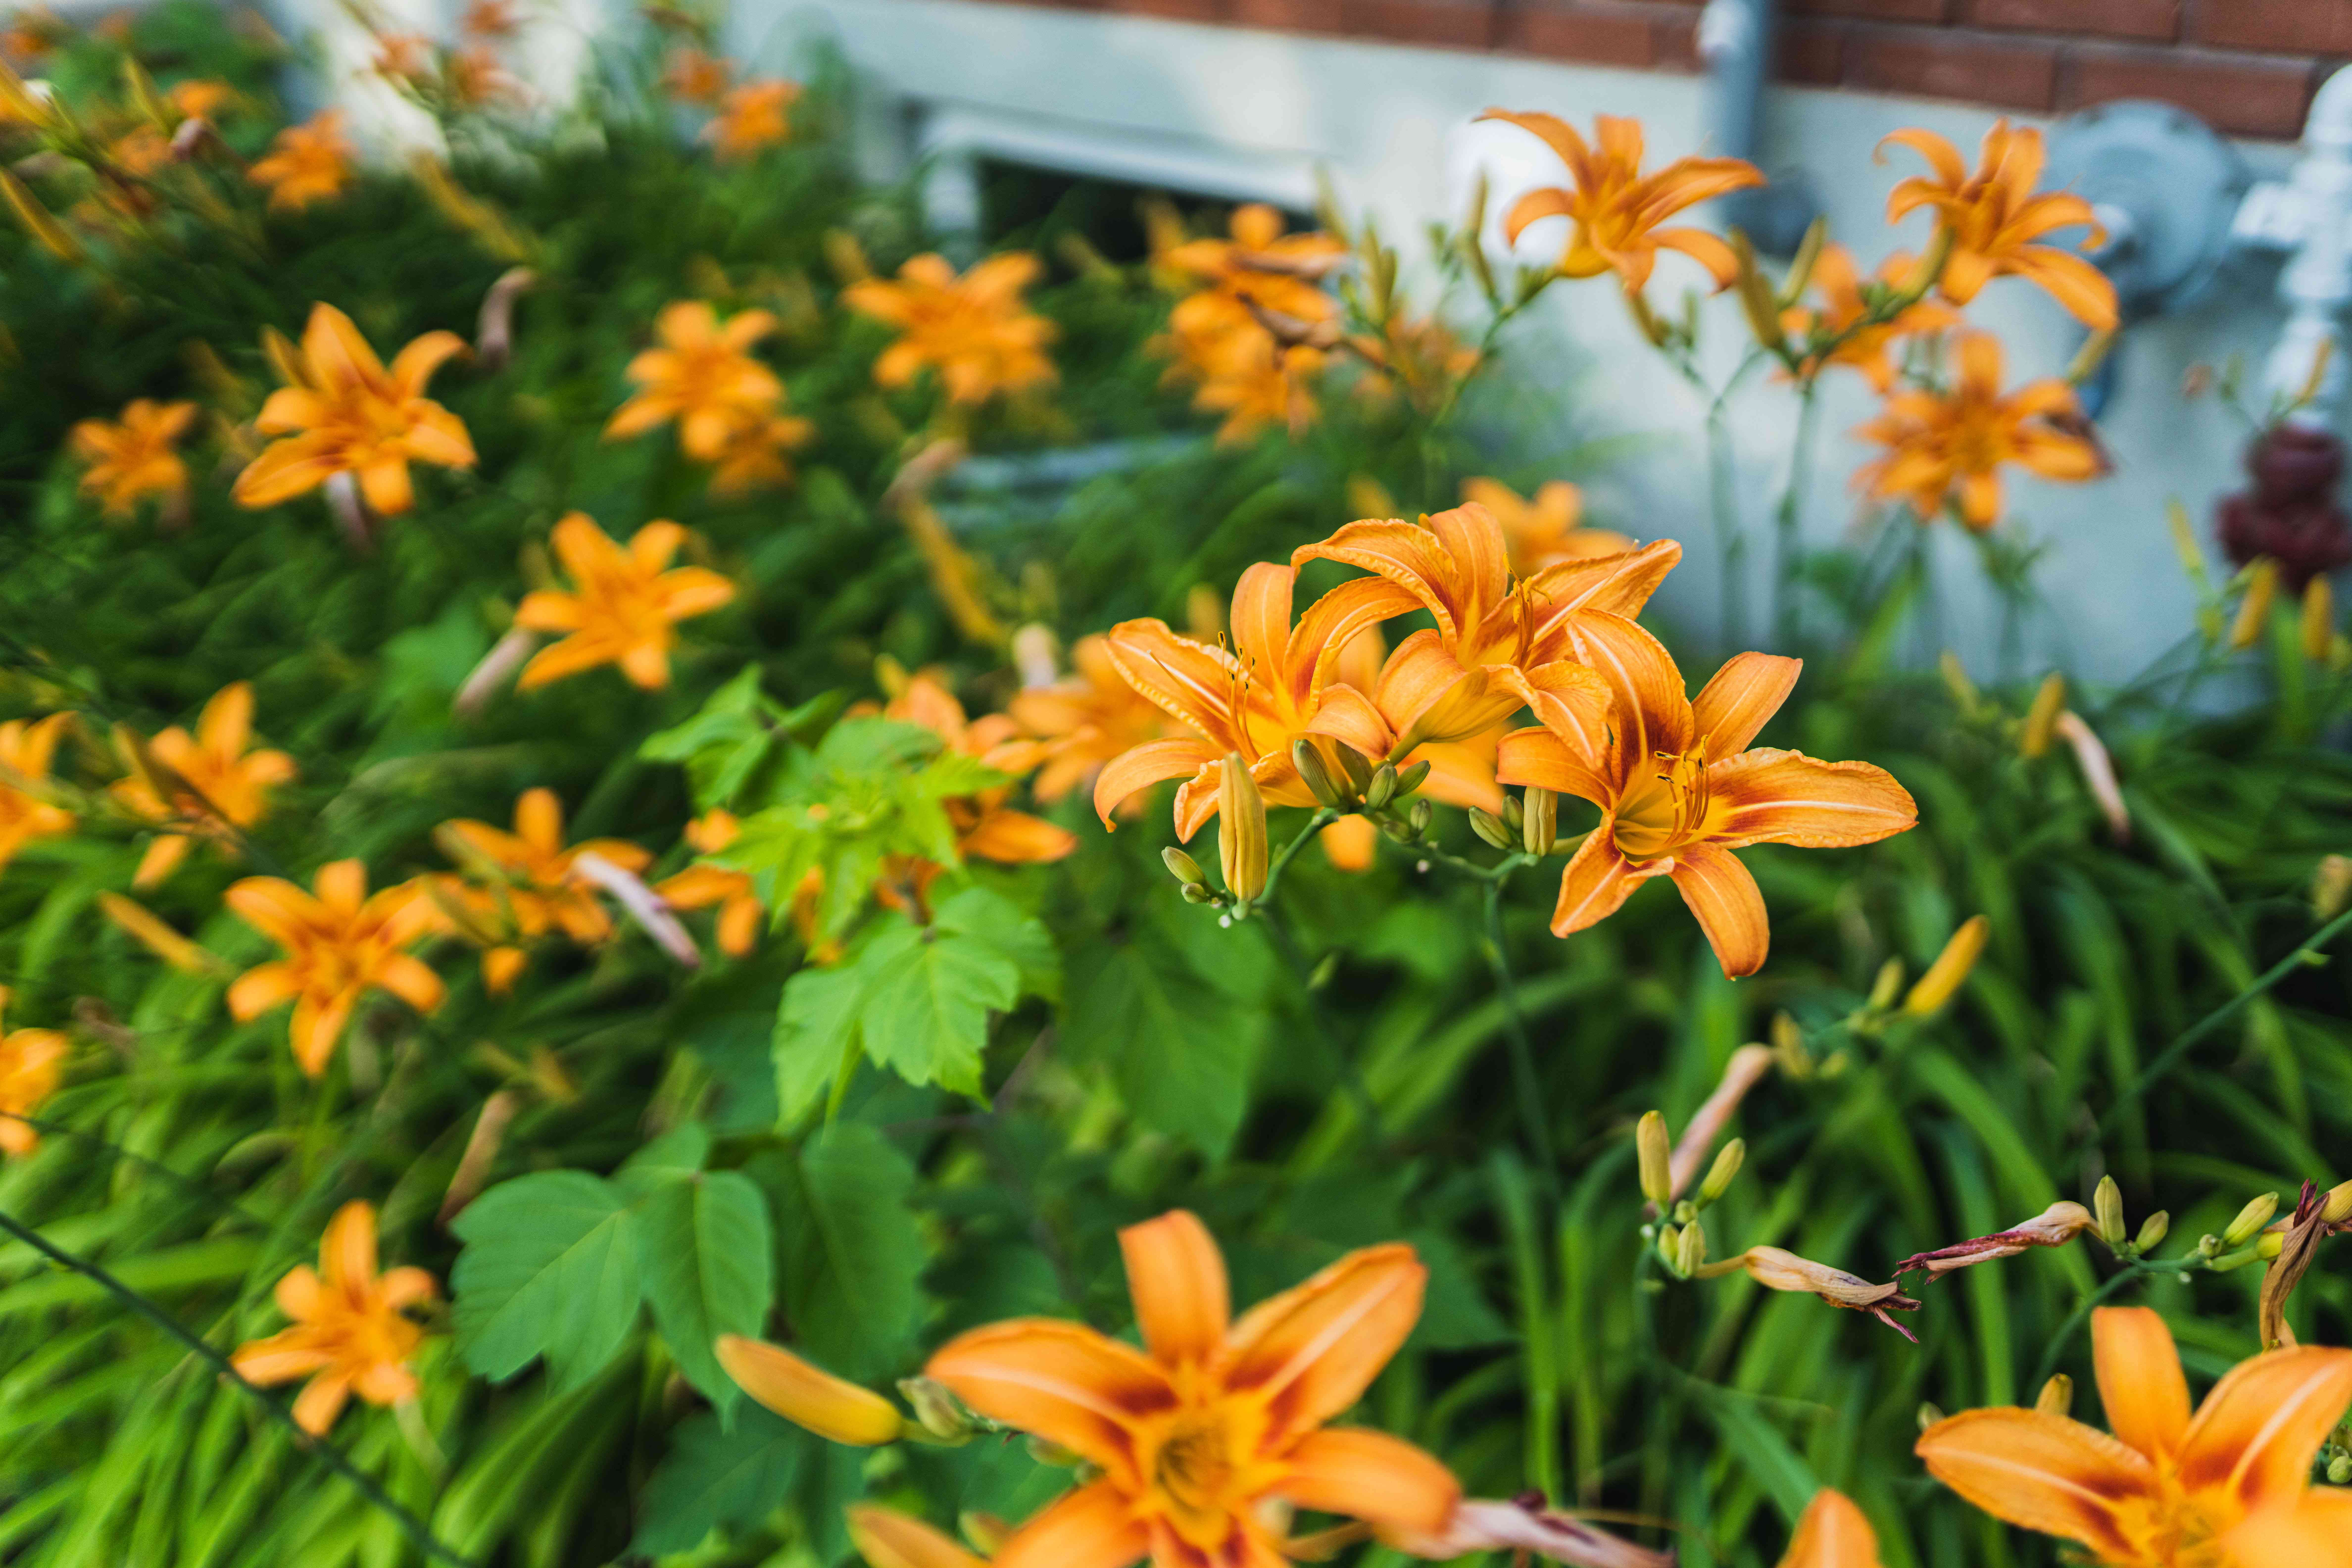 Orange daylily plant surrounded by blade-like foliage with orange flowers on side of building